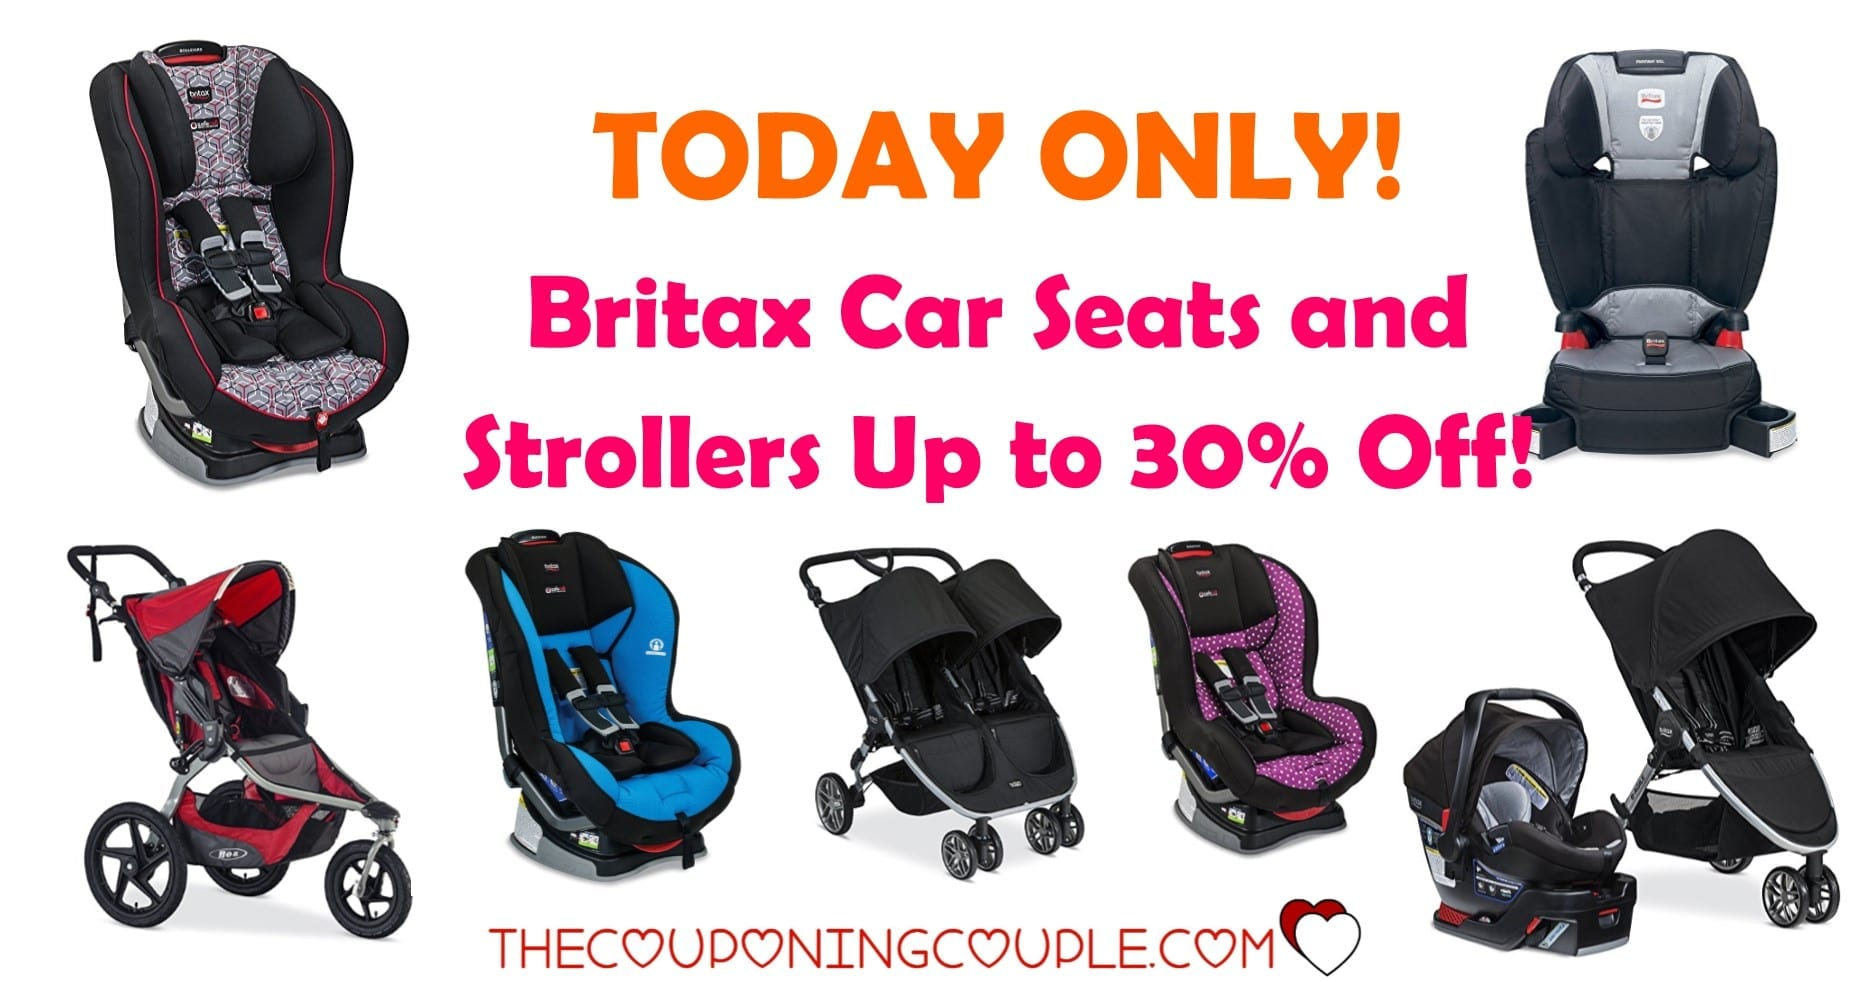 Britax Car Seat With Stroller Today Only Get Up To 30 Off On Britax Car Seats And Strollers